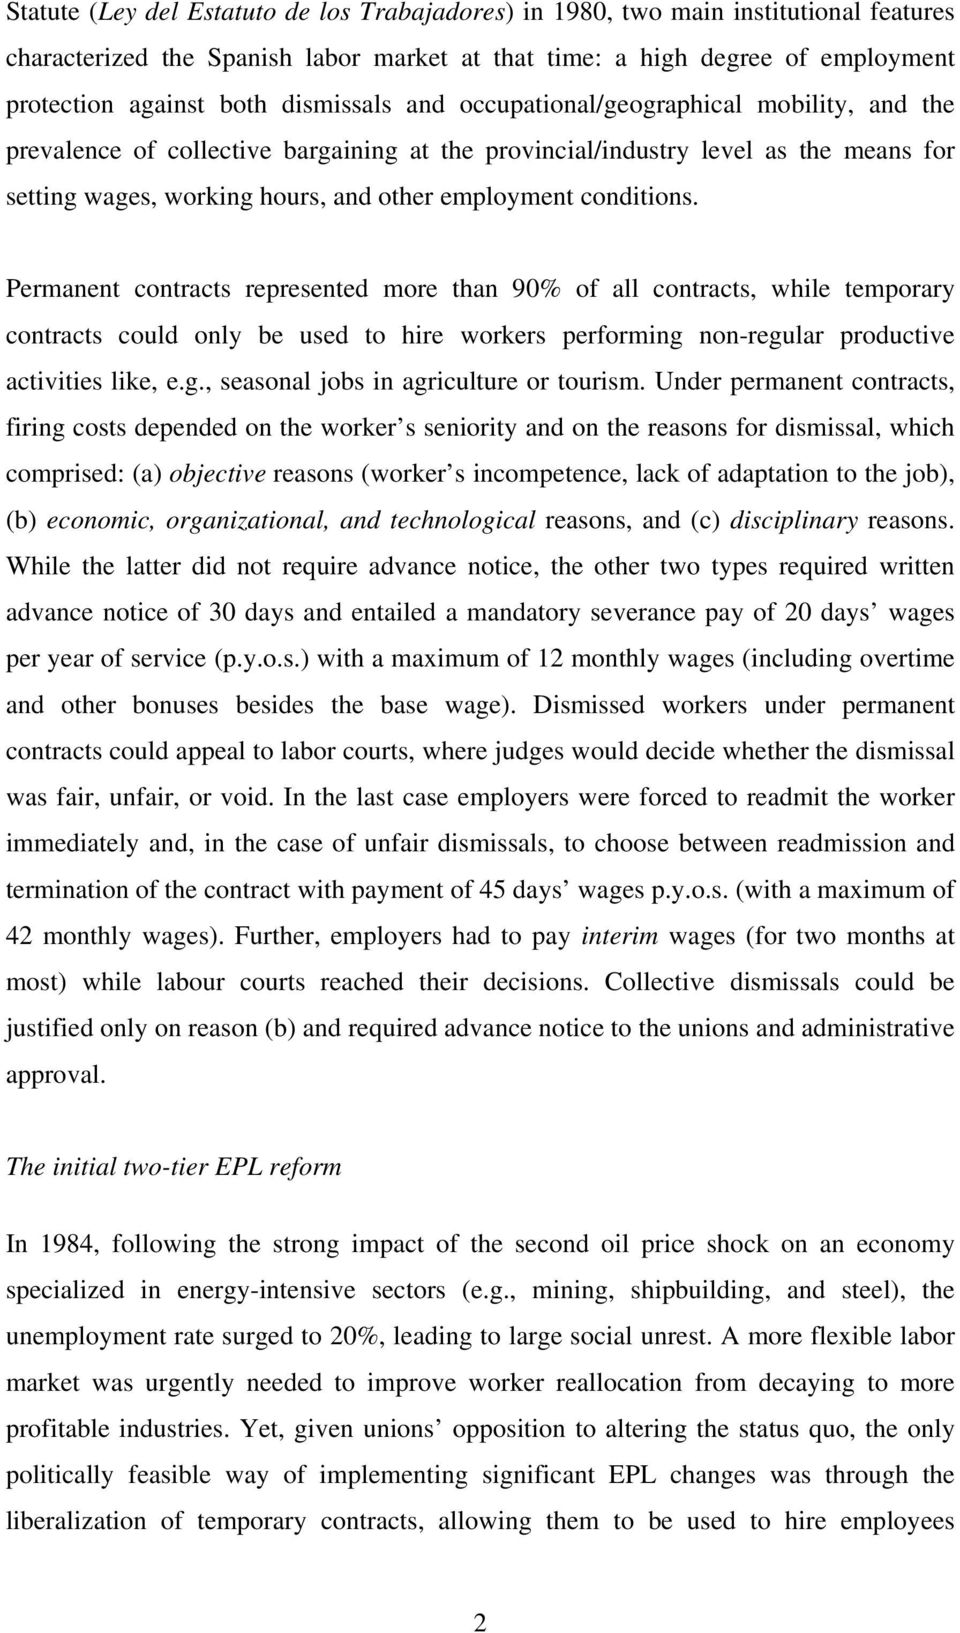 conditions. Permanent contracts represented more than 90% of all contracts, while temporary contracts could only be used to hire workers performing non-regular productive activities like, e.g., seasonal jobs in agriculture or tourism.